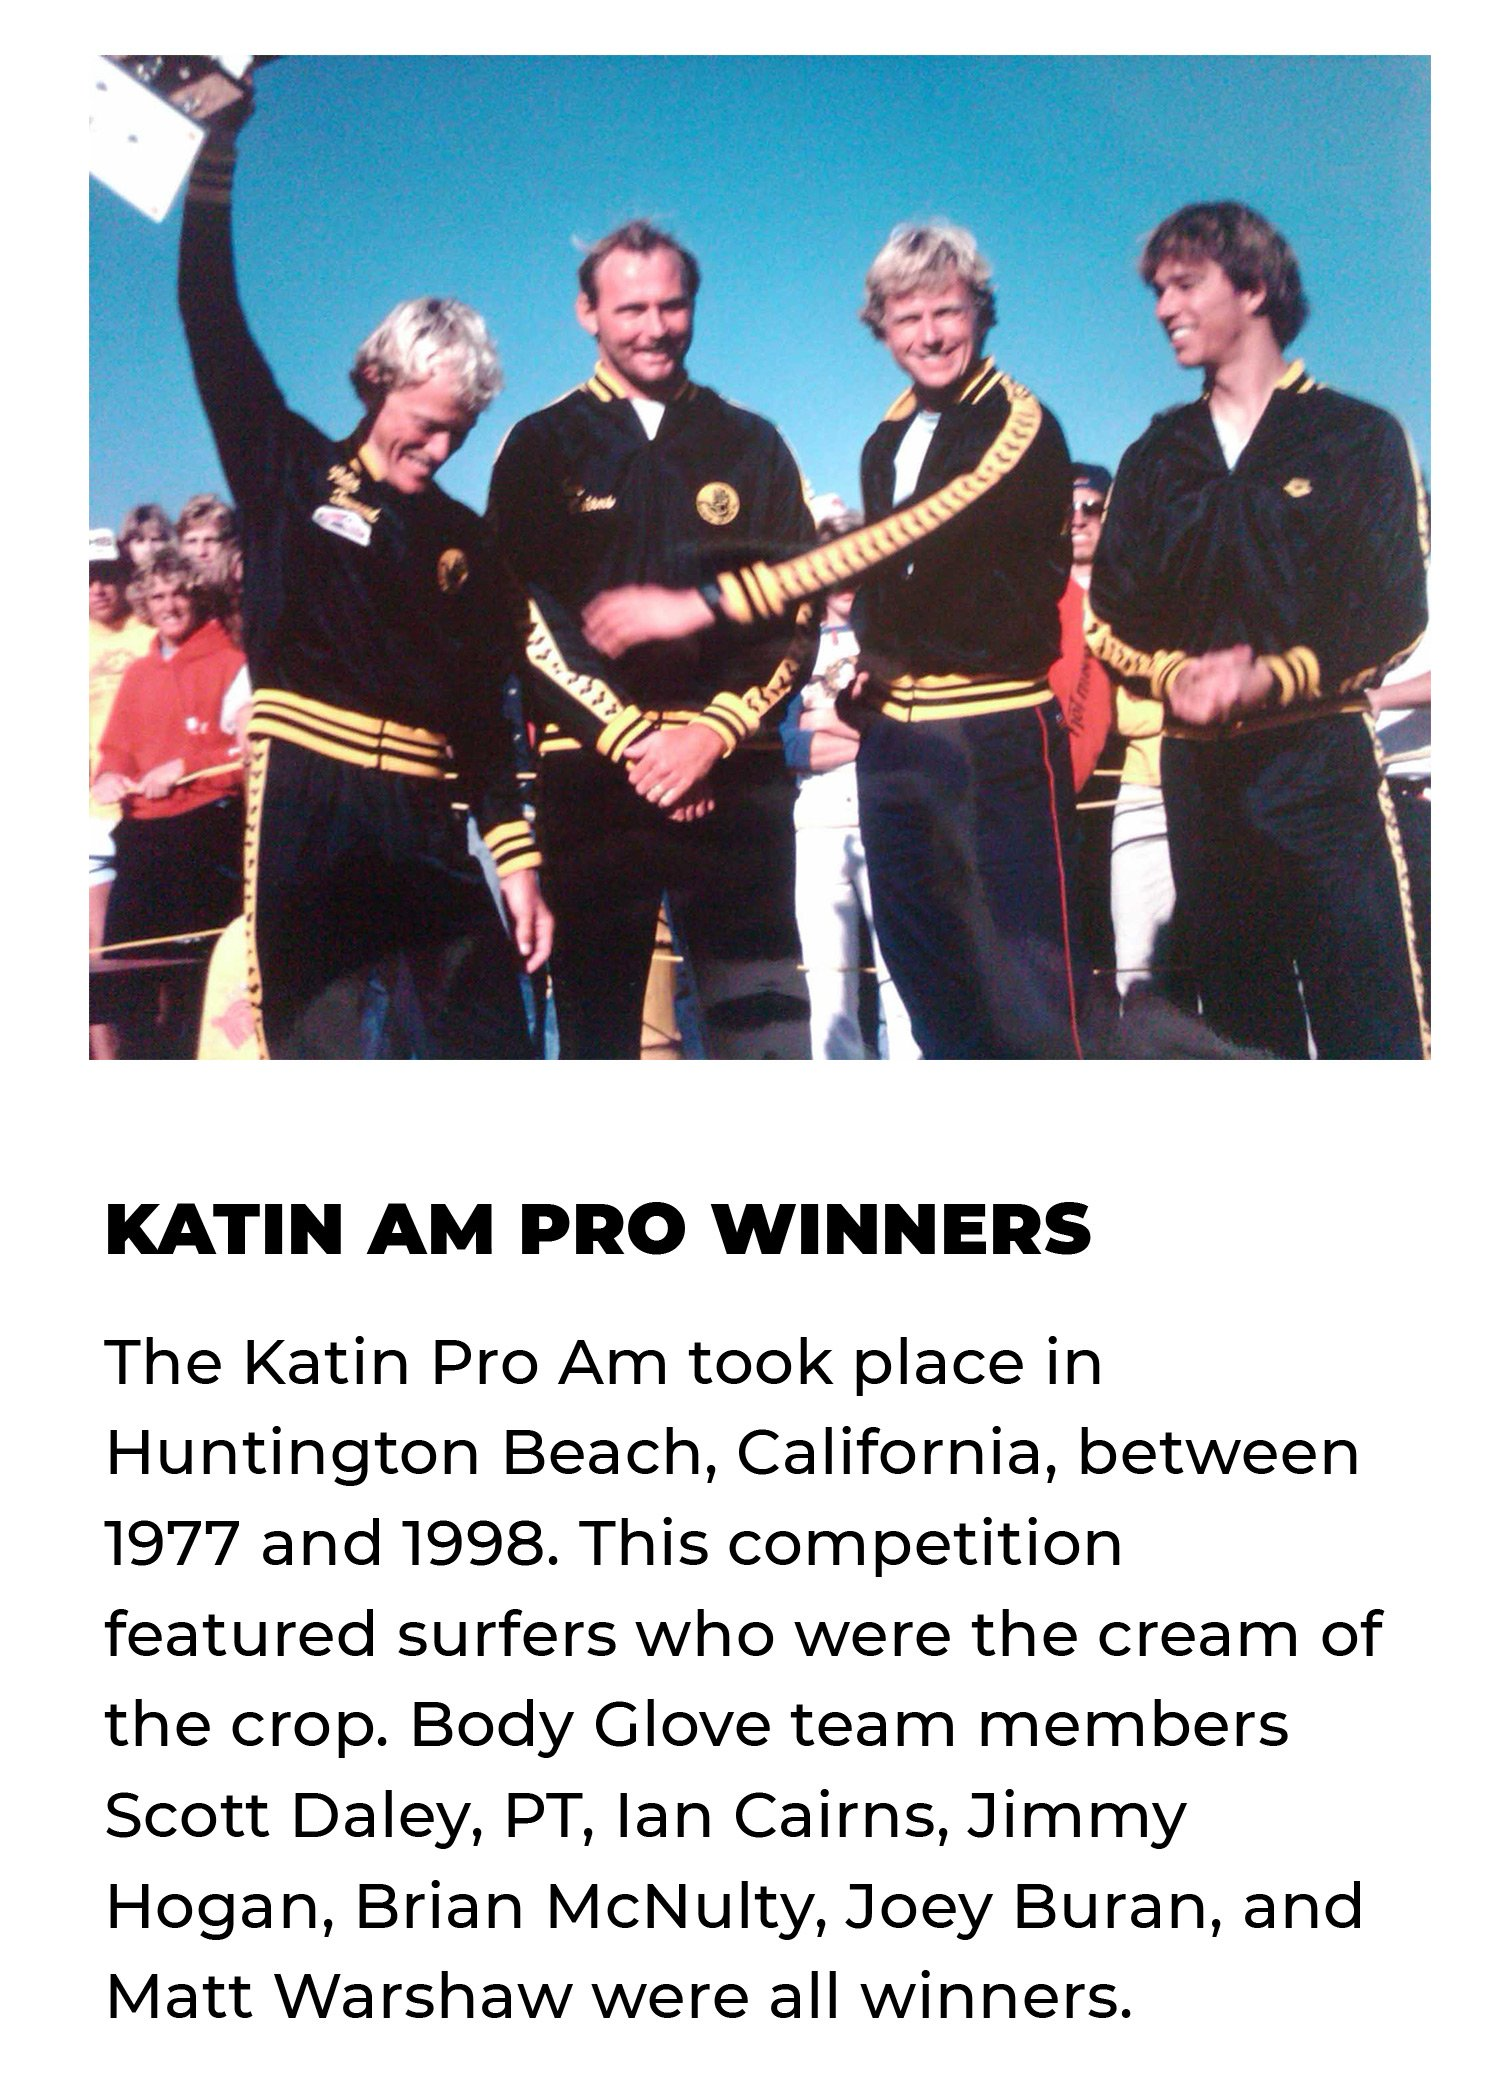 Katin Am Pro Winners | The Katin Pro Am took place in Huntington Beach, California, between 1977 and 1998. This competition featured surfers who were the cream of the crop. Body Glove team members Scott Daley, PT, Ian Cairns, Jimmy Hogan, Brian McNulty, Joey Buran, and Matt Warshaw were all winners.